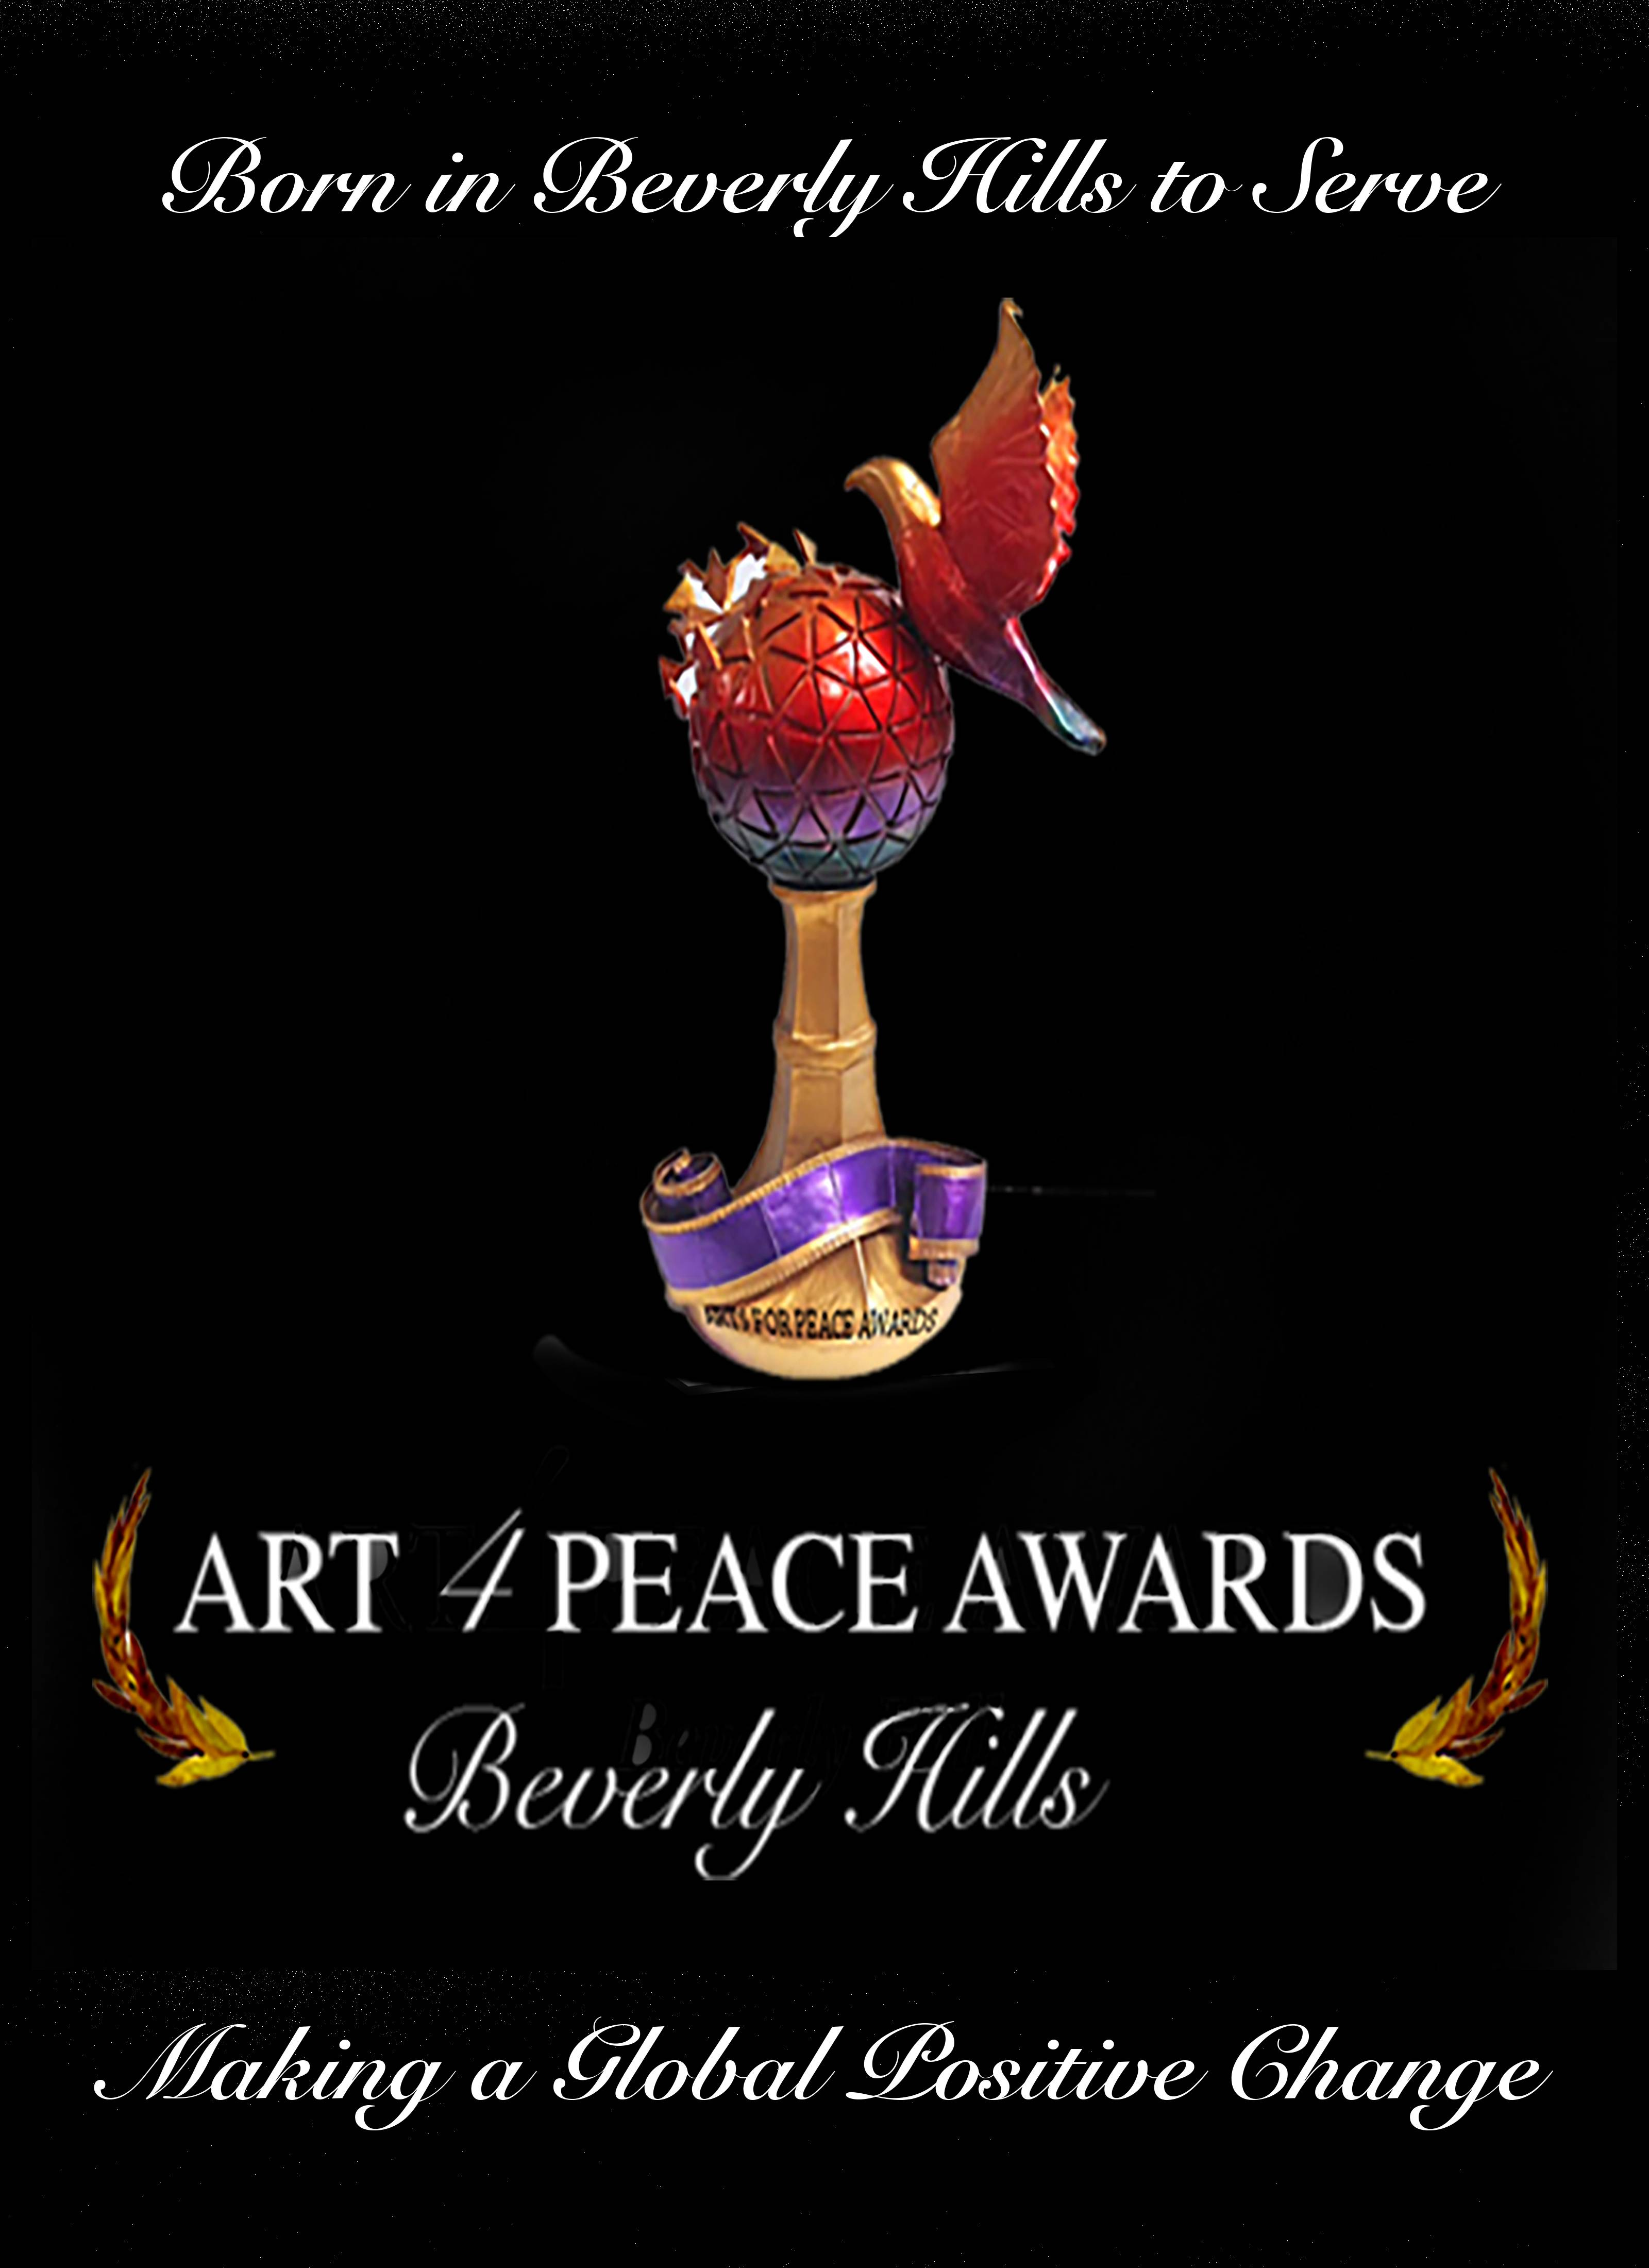 art4peaceawards